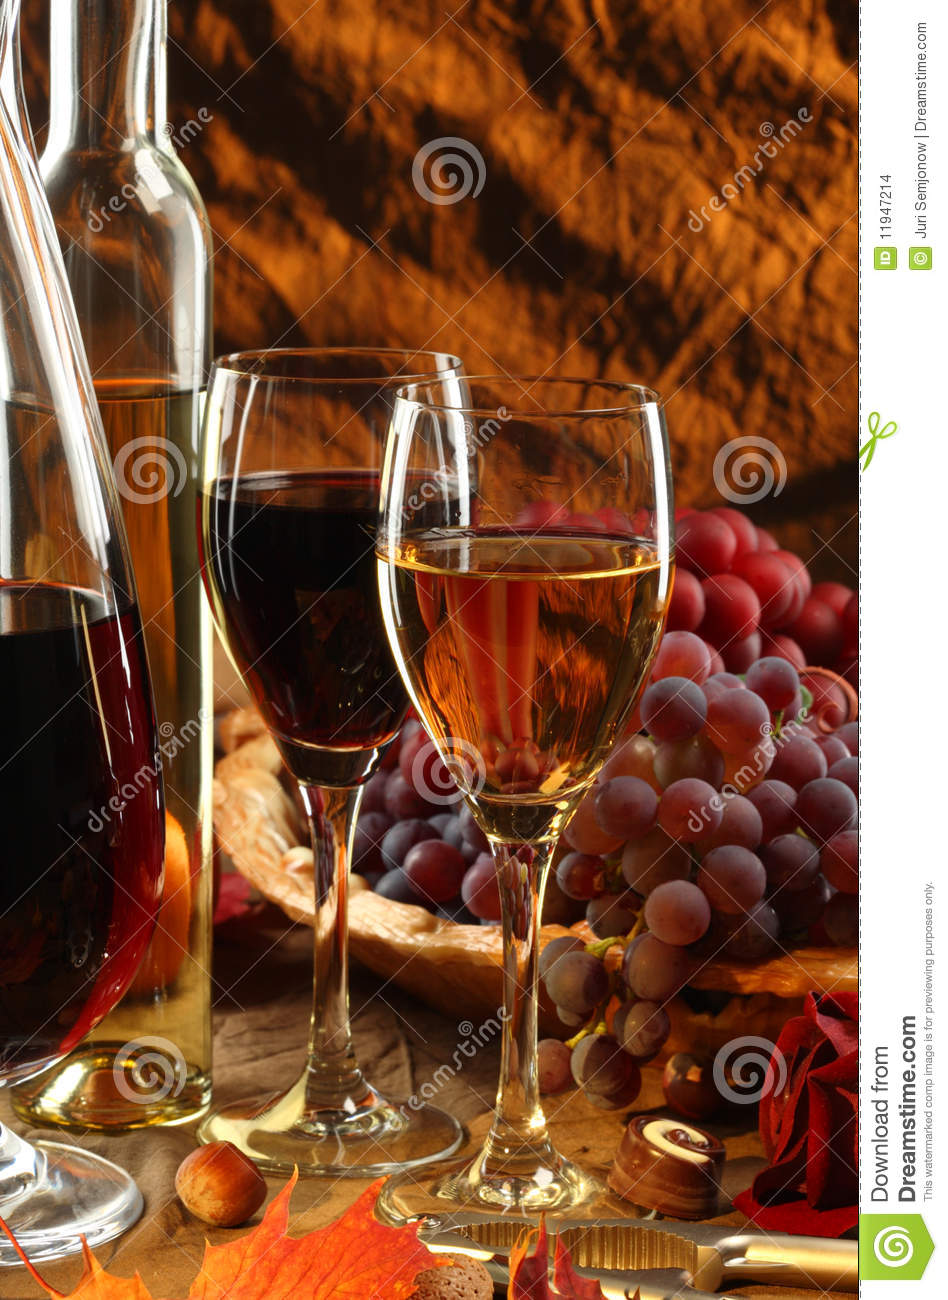 Wine and fruits.